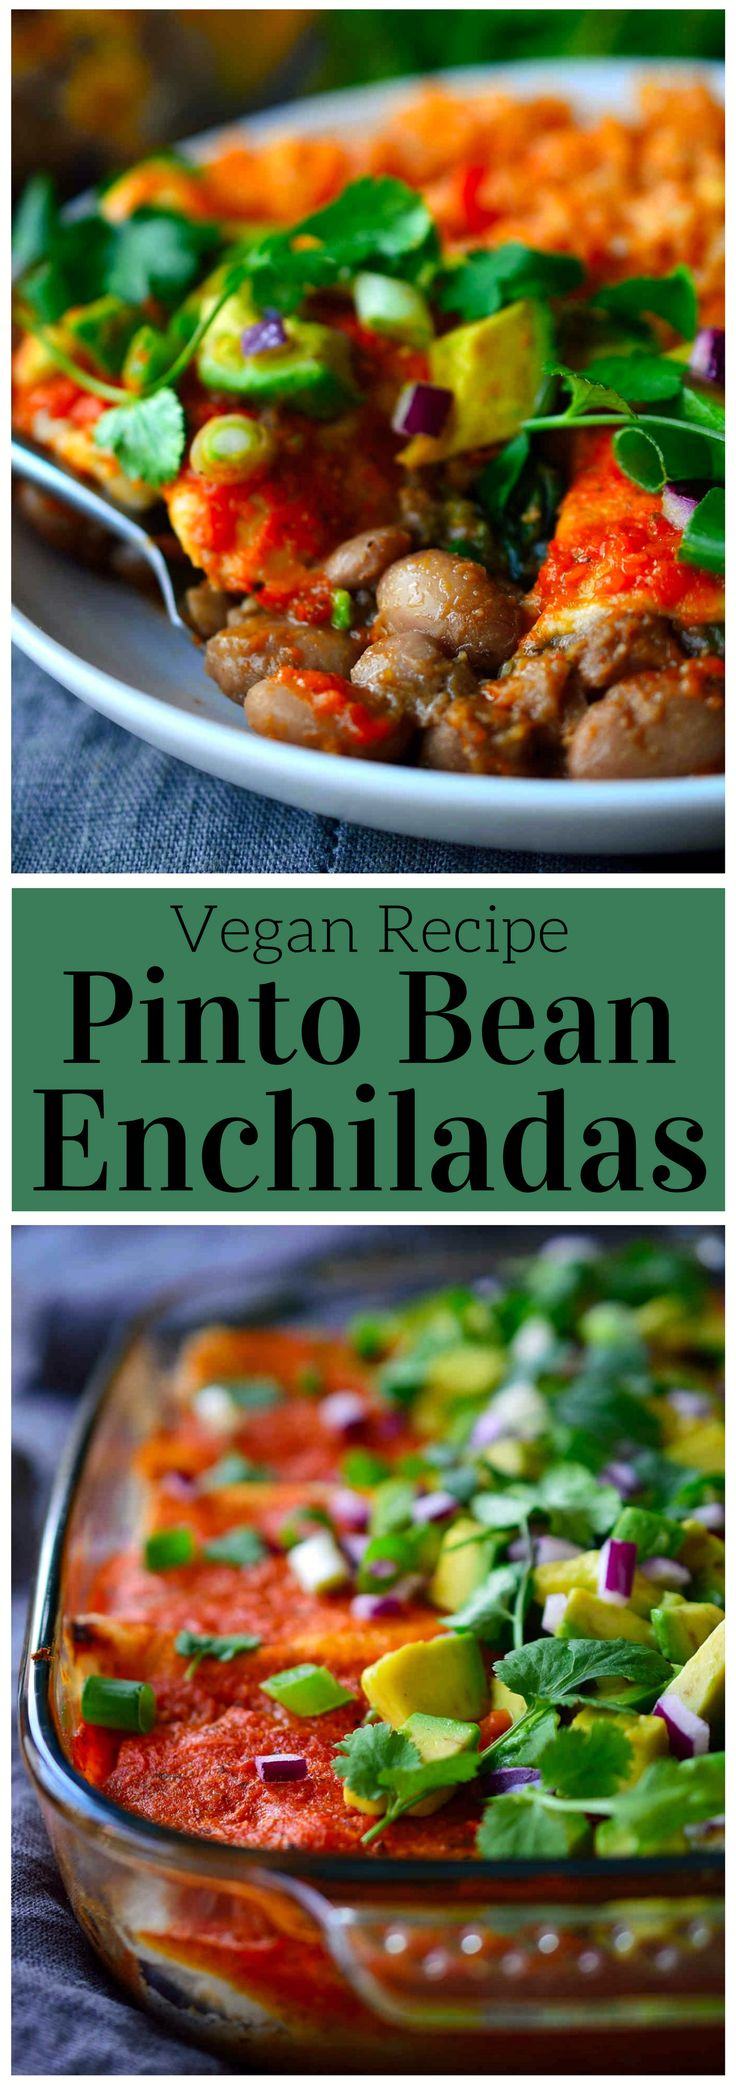 25 Best Homemade Enchilada Sauce Ideas On Pinterest Stacked Enchiladas Easy Enchilada Sauce And Paleo Enchiladas